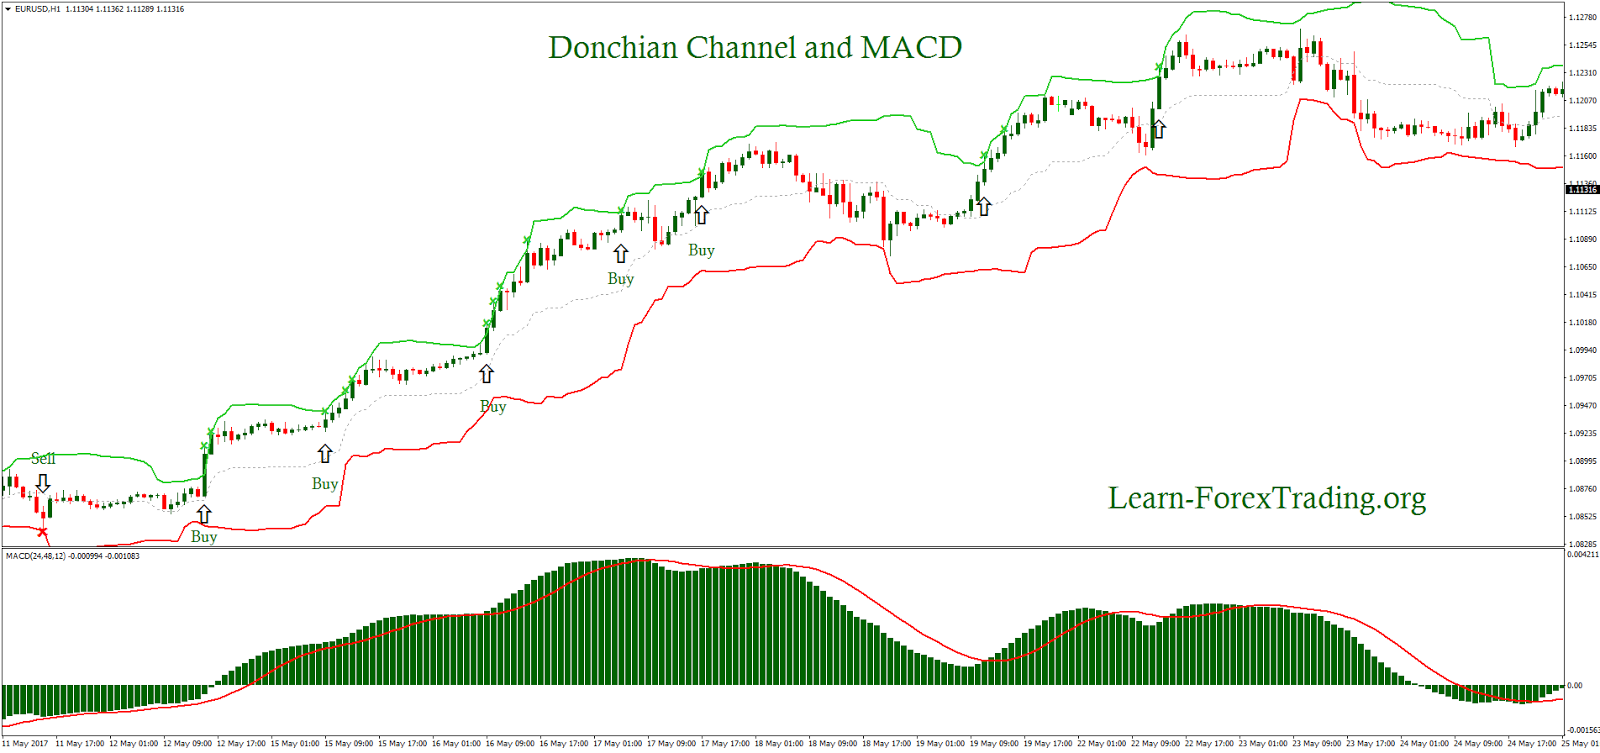 Donchian channel breakout trading system